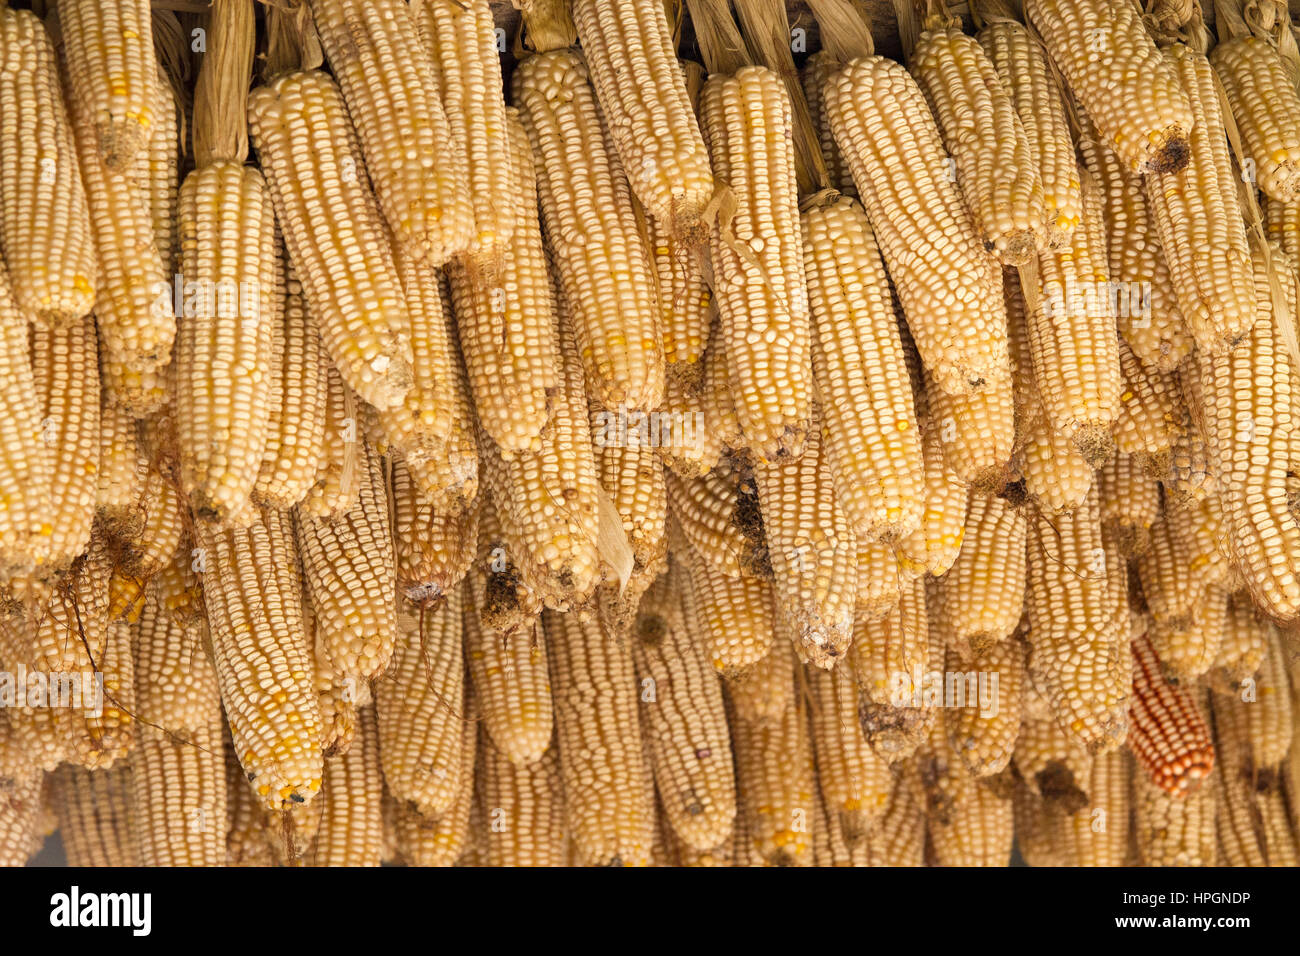 Corn cobs are hanged outside house for traditional natural air drying - Stock Image